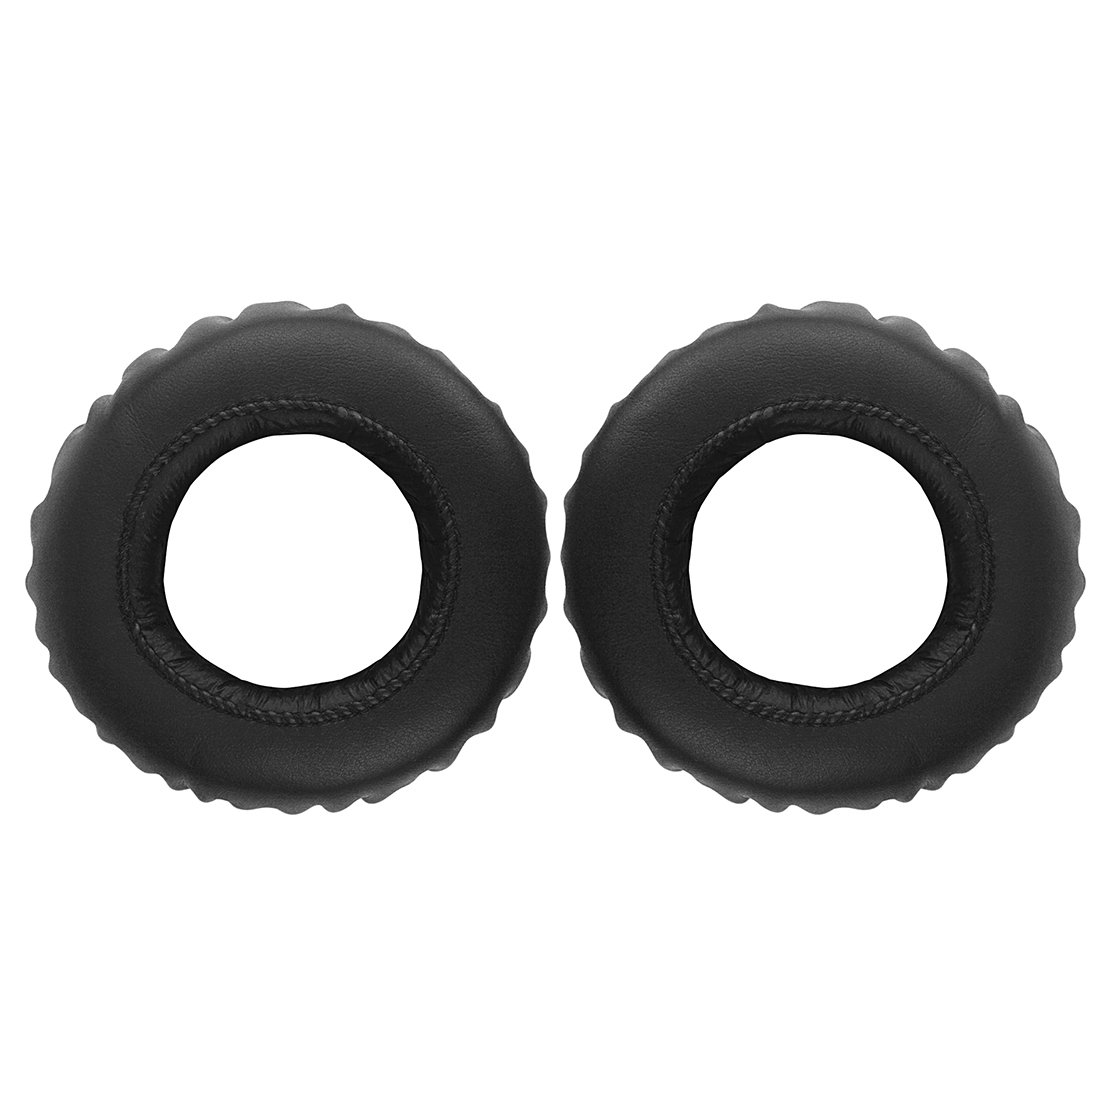 Earpad for Sony MDR XB700 Headphone Replacement Ear Pad Ear Cushion Ear Cups Ear Cover Earpads Repair Parts in Earphone Accessories from Consumer Electronics